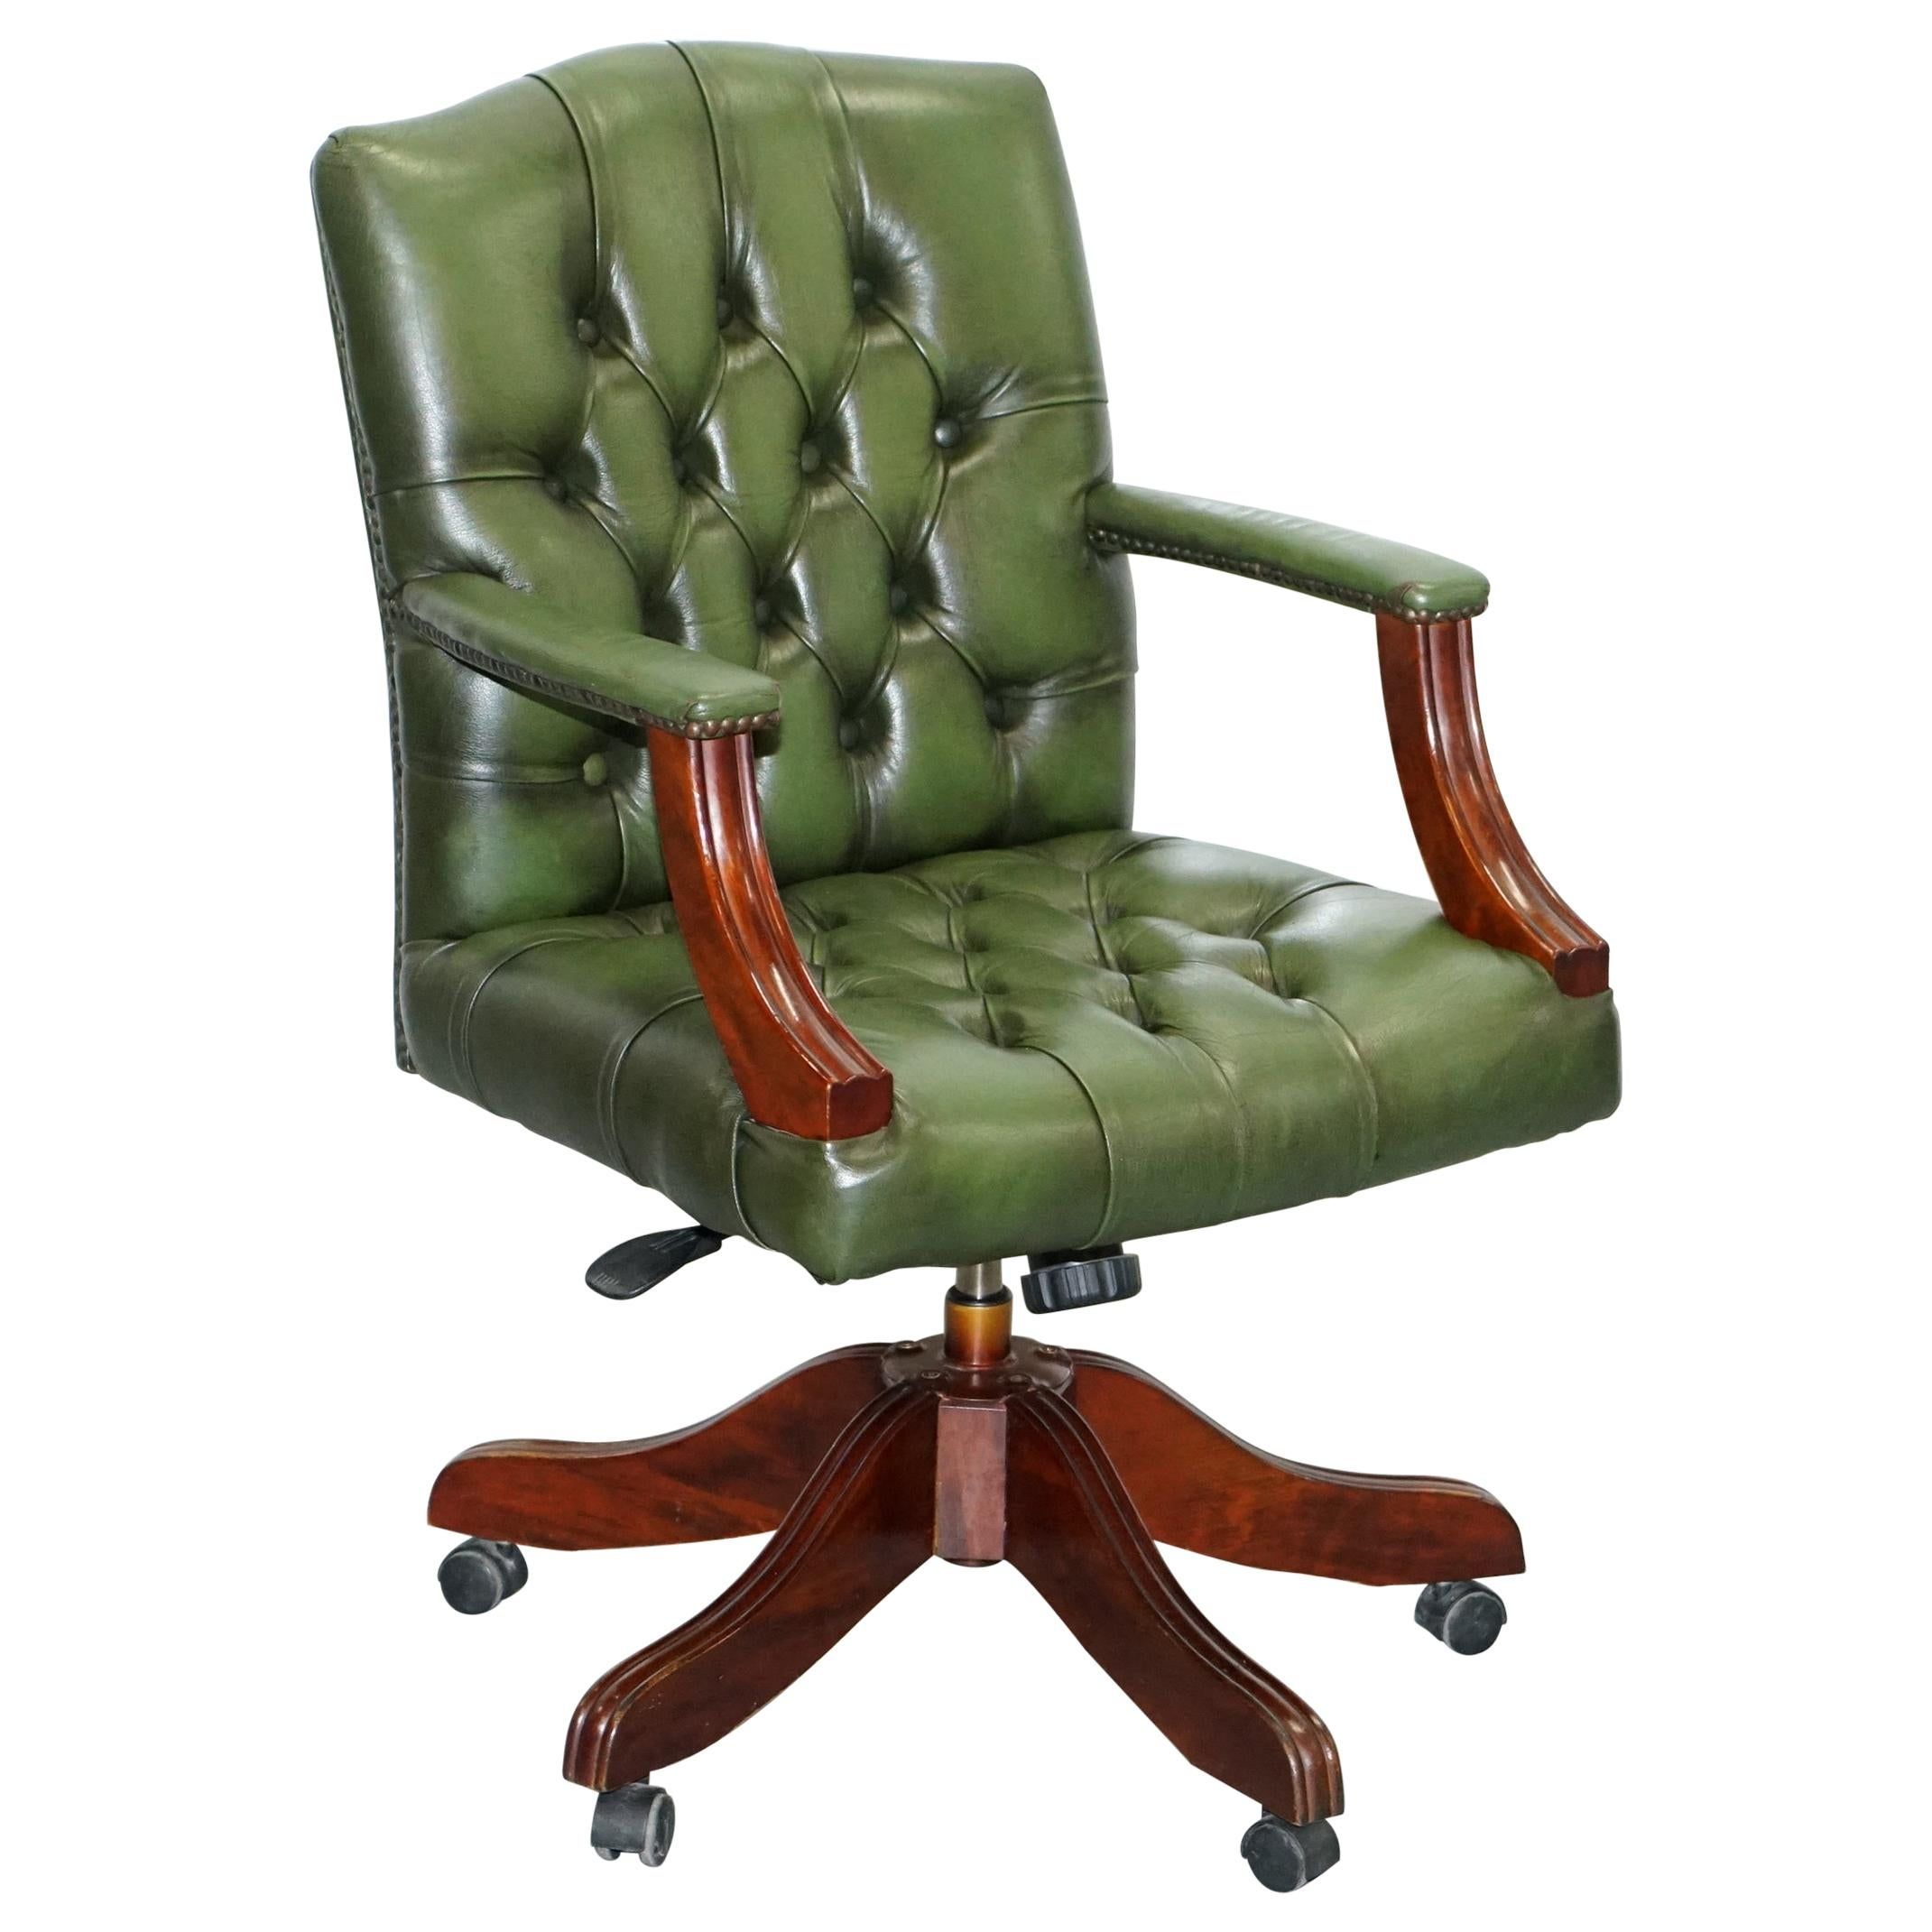 Outstanding Leather Captain Chairs 87 For Sale On 1Stdibs Bralicious Painted Fabric Chair Ideas Braliciousco